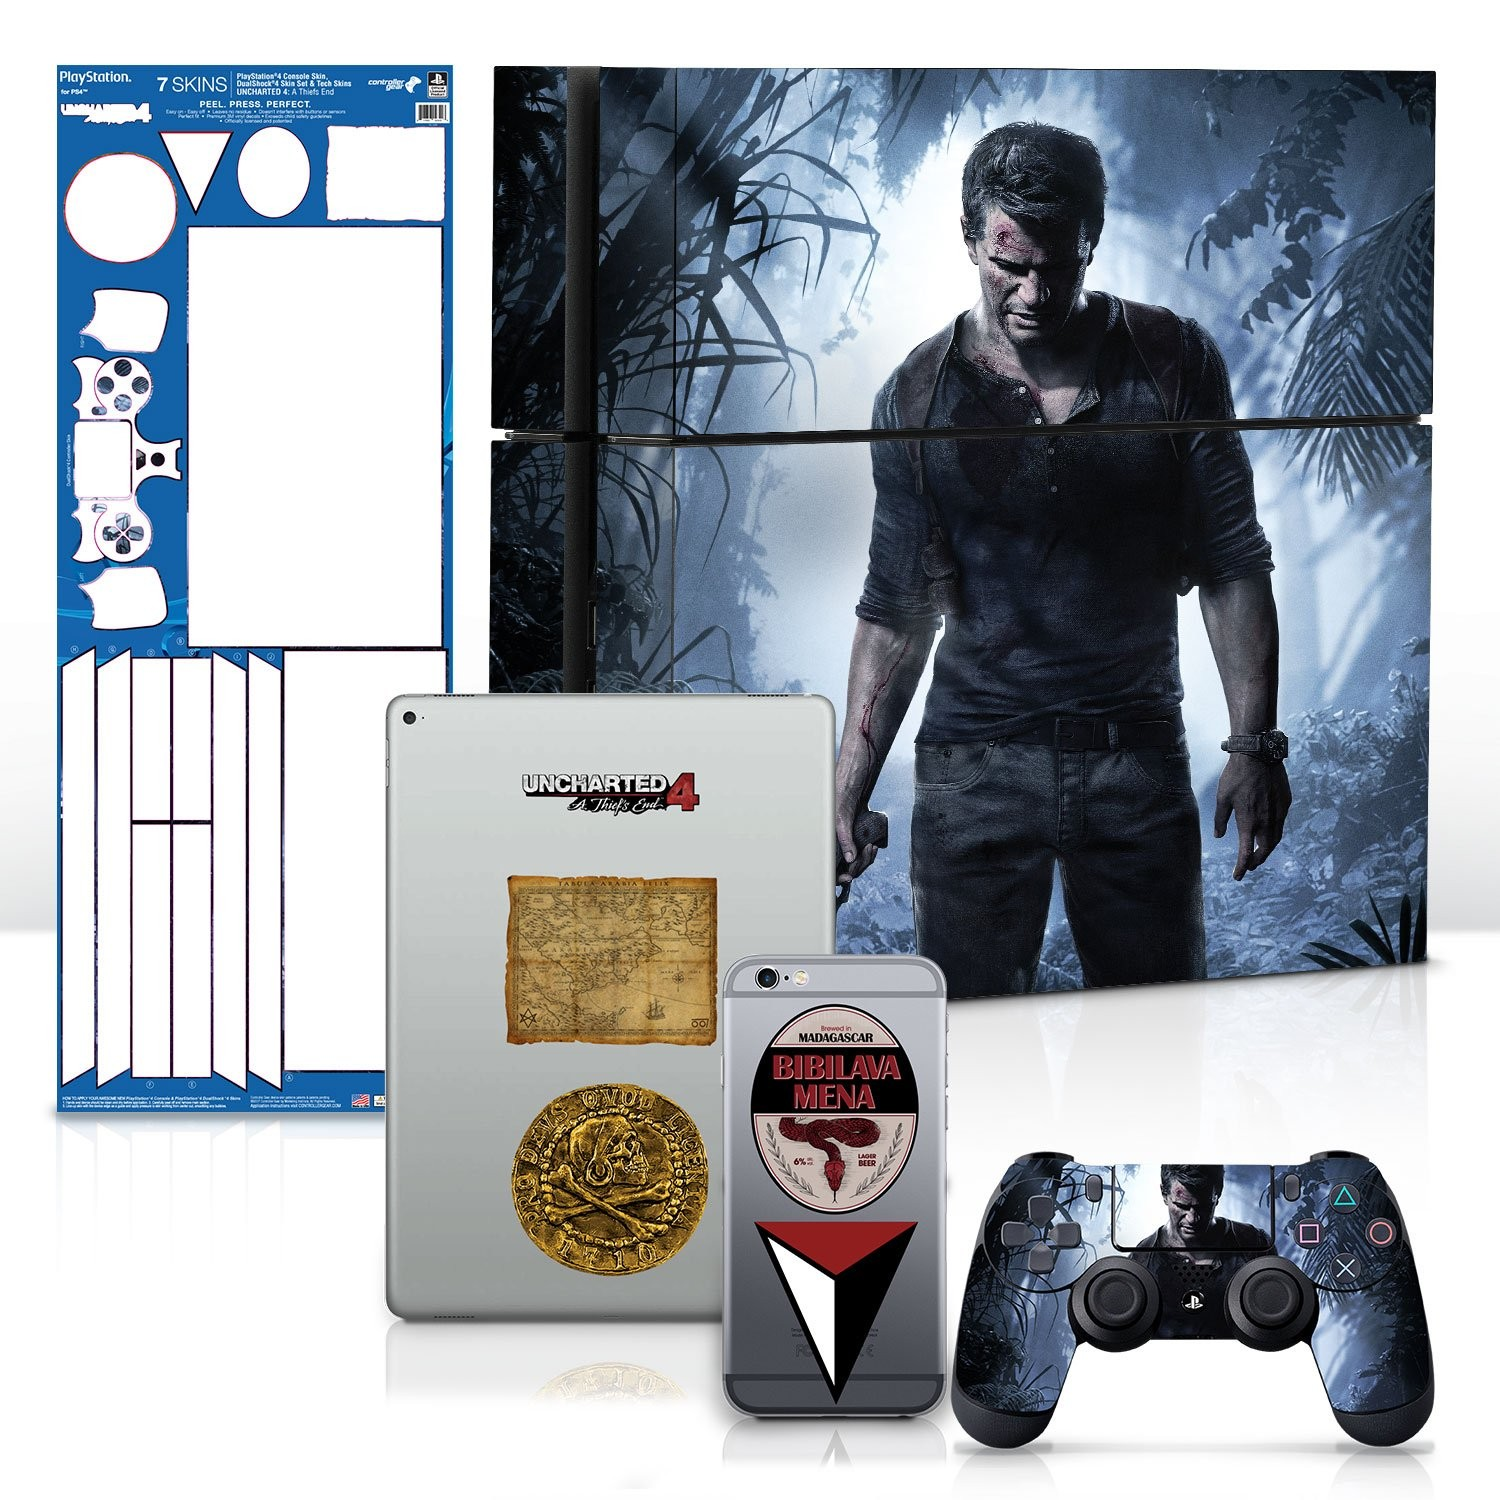 Uncharted 4 A Thief's End - PS4 Console and Controller Gaming Skin Pack - Officially Licensed by PlayStation